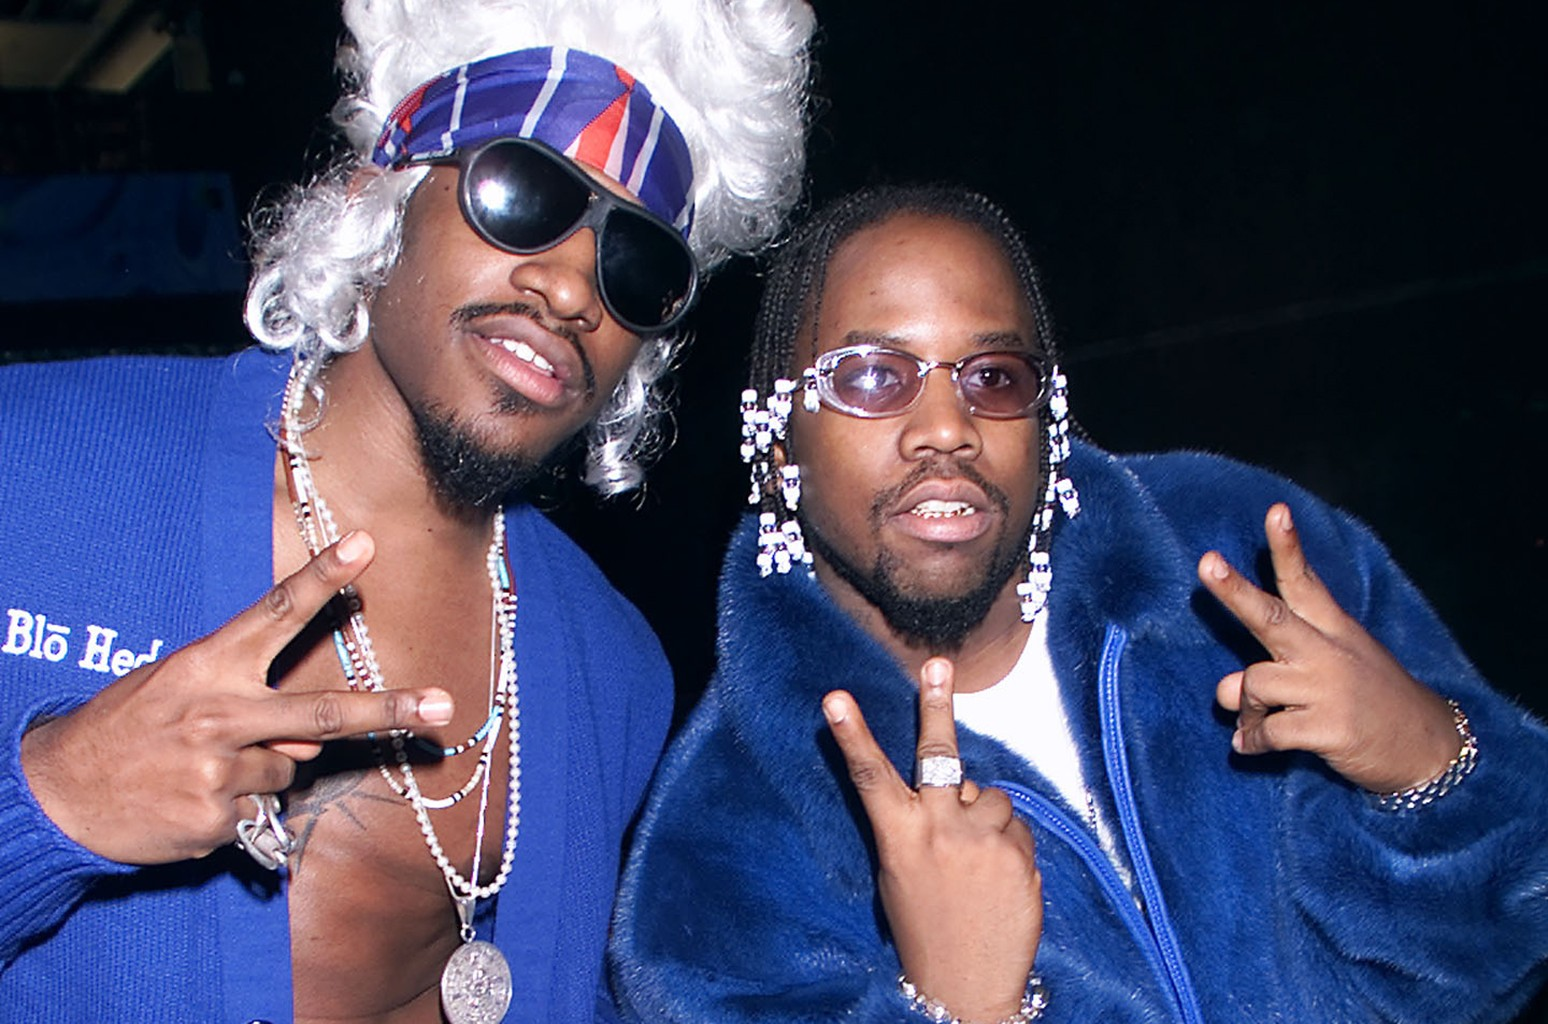 Andre and Big Boi of OutKast